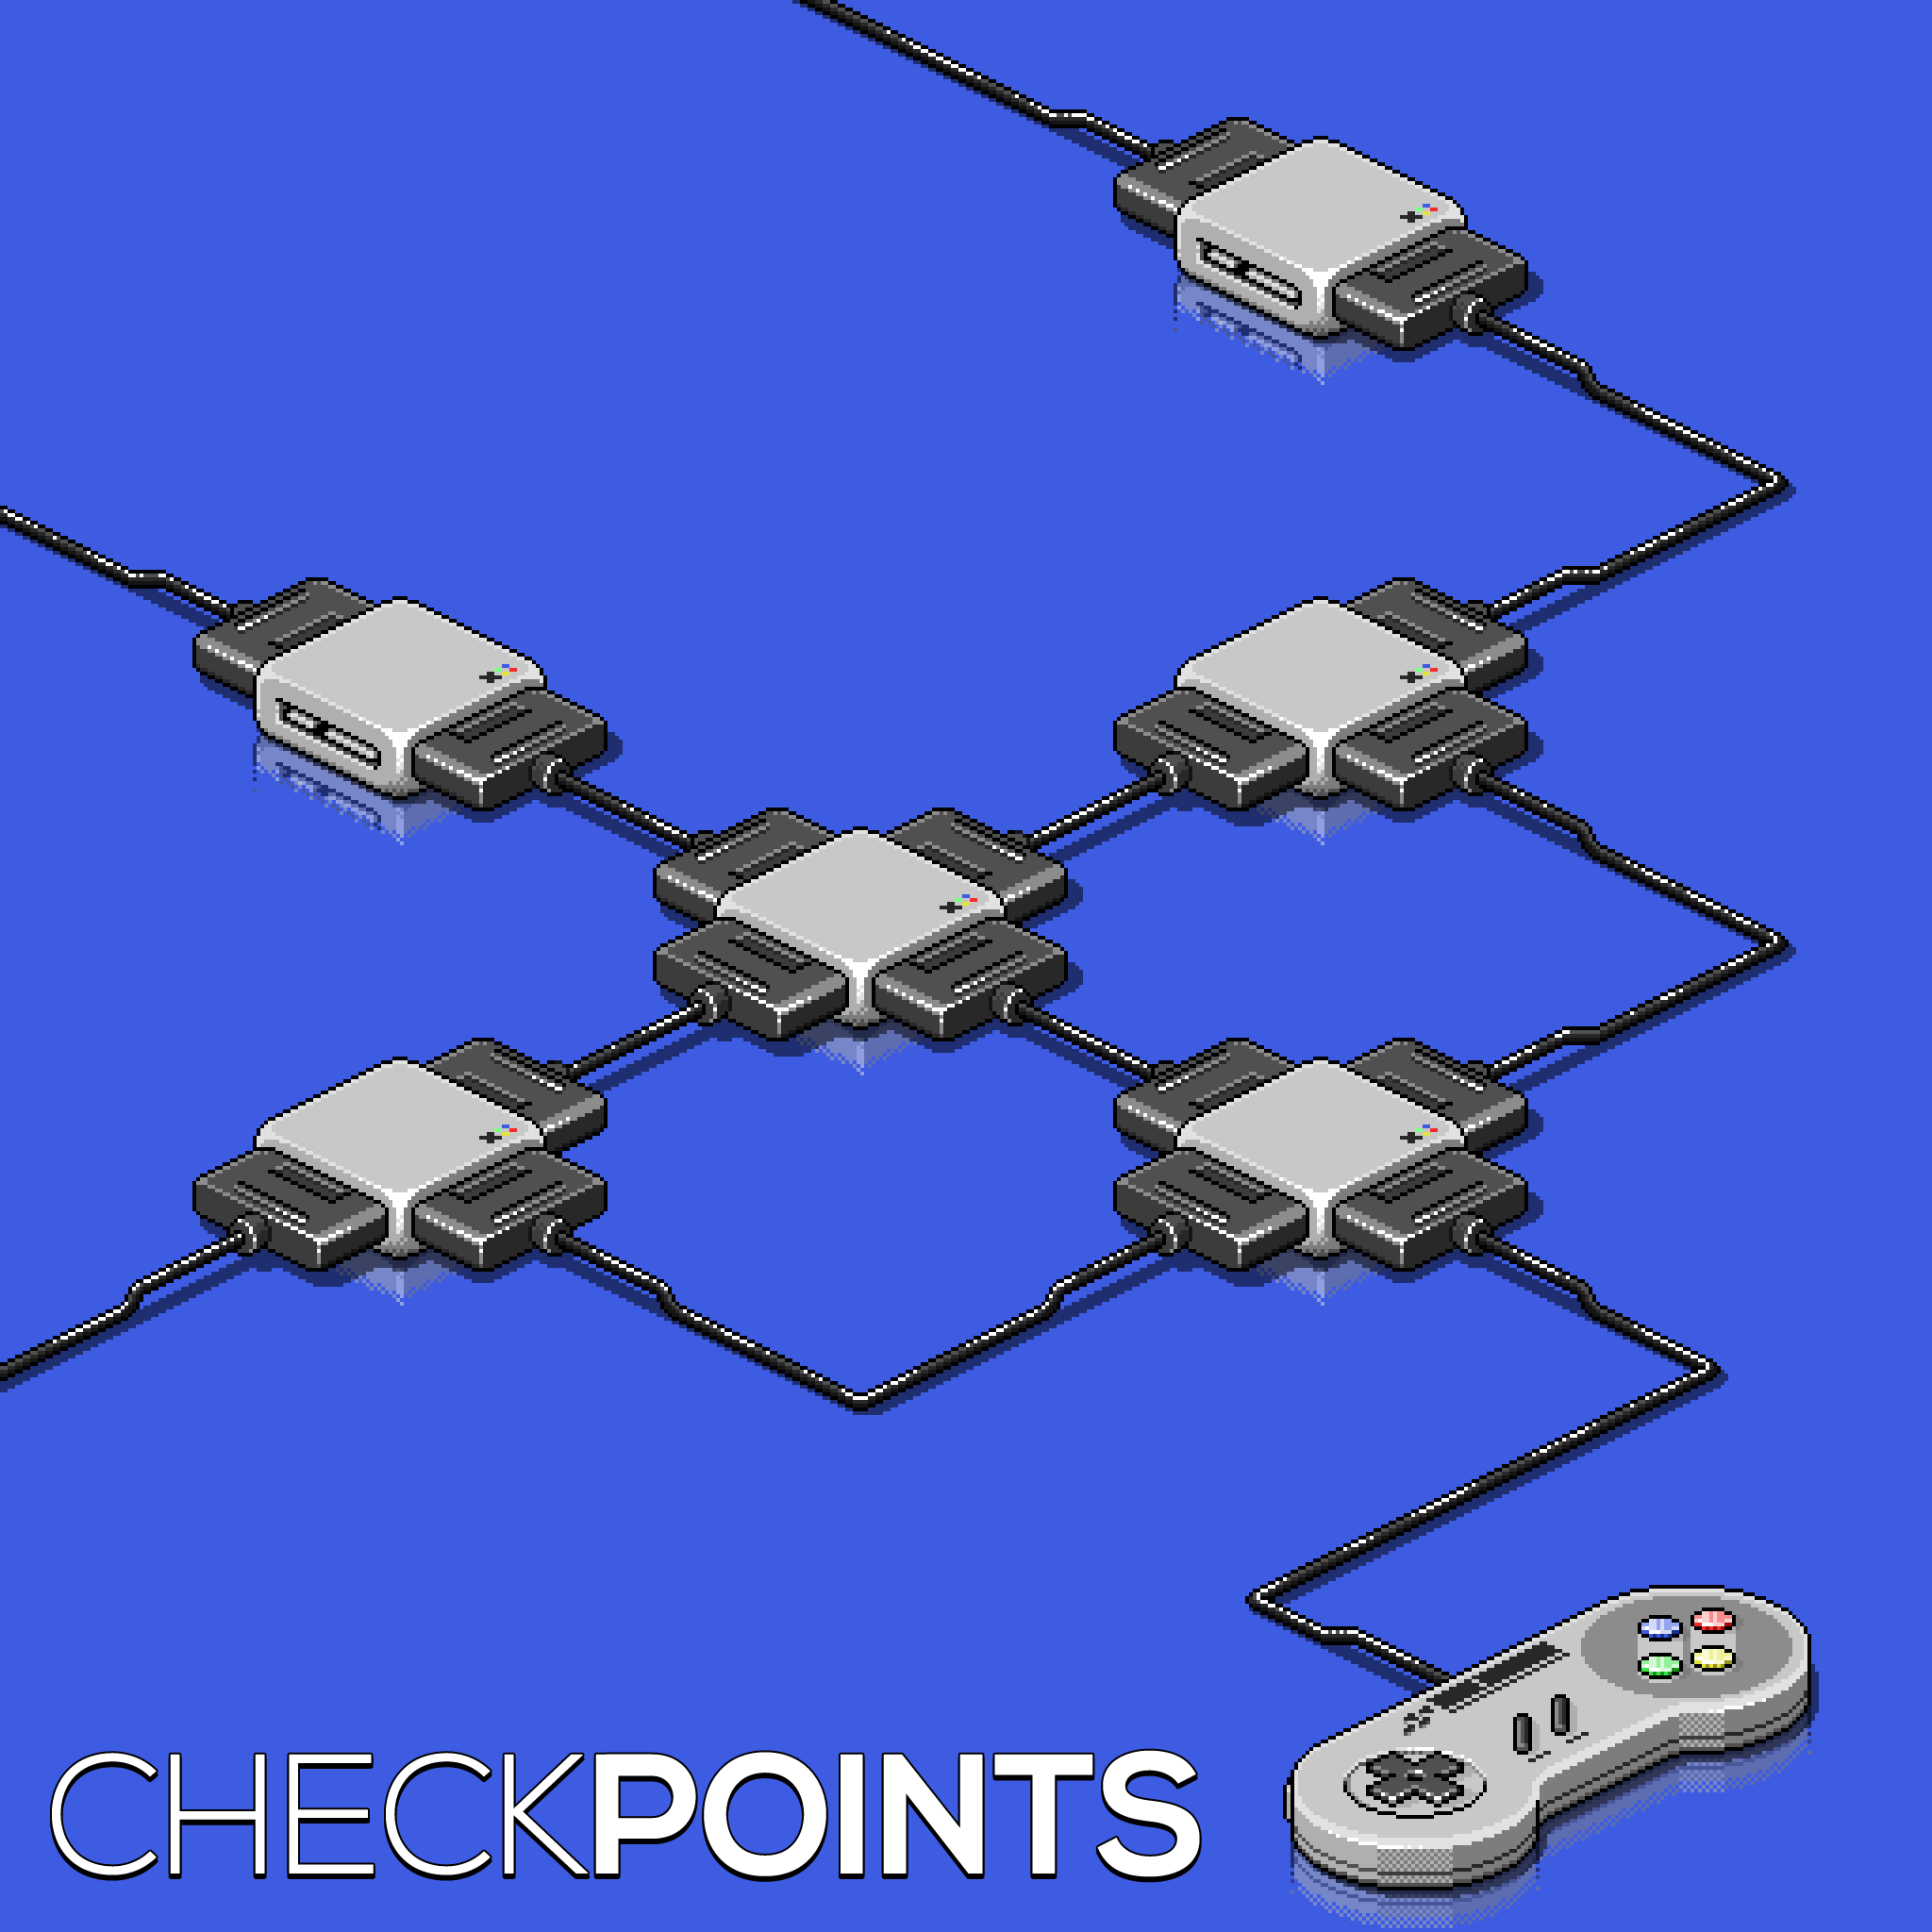 checkpoints final SNES v2o 2048.png